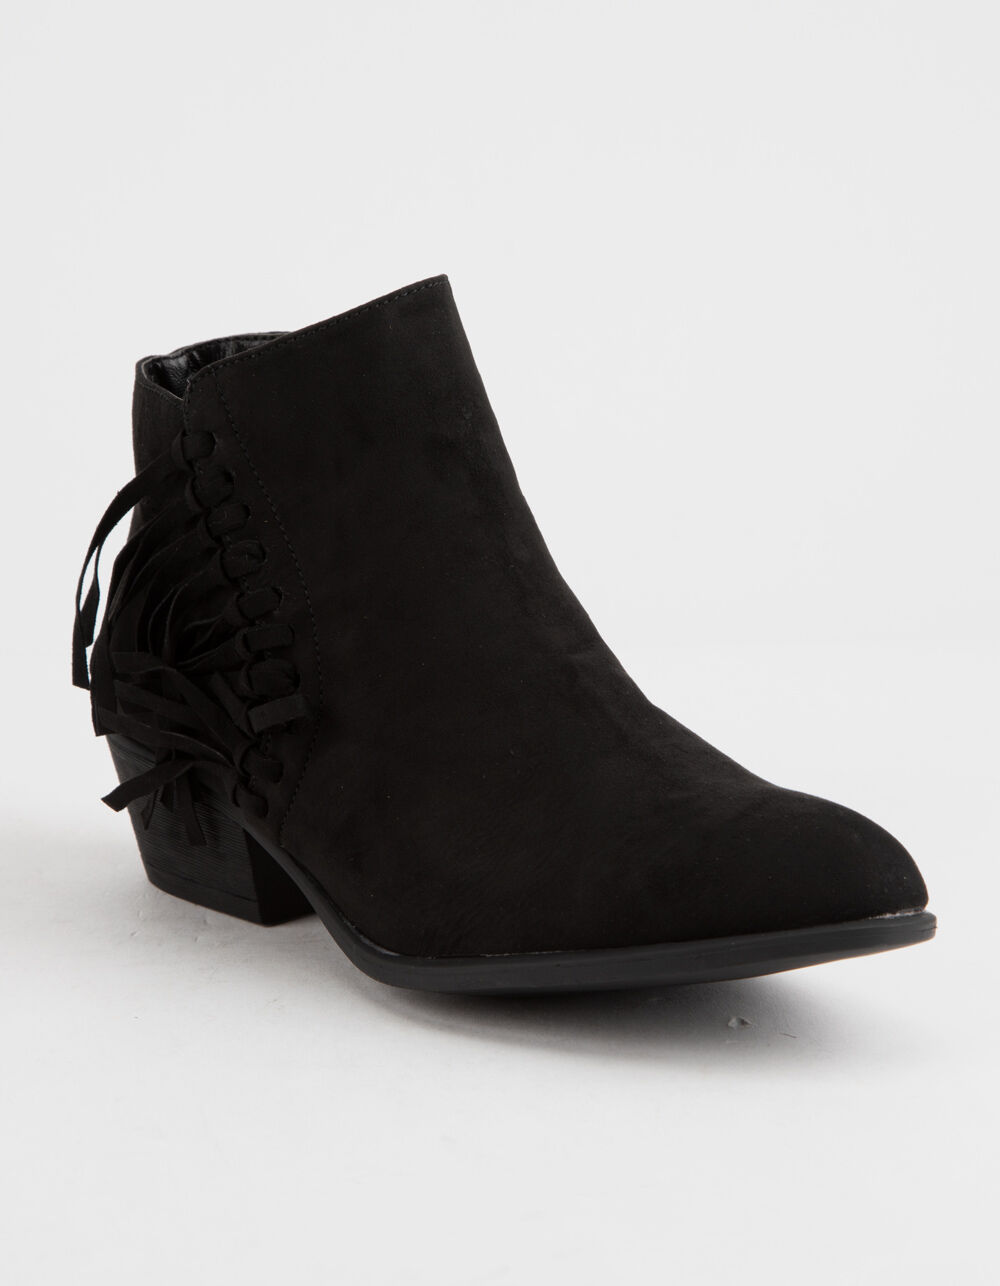 Image of BAMBOO SADIE BLACK BOOTIES